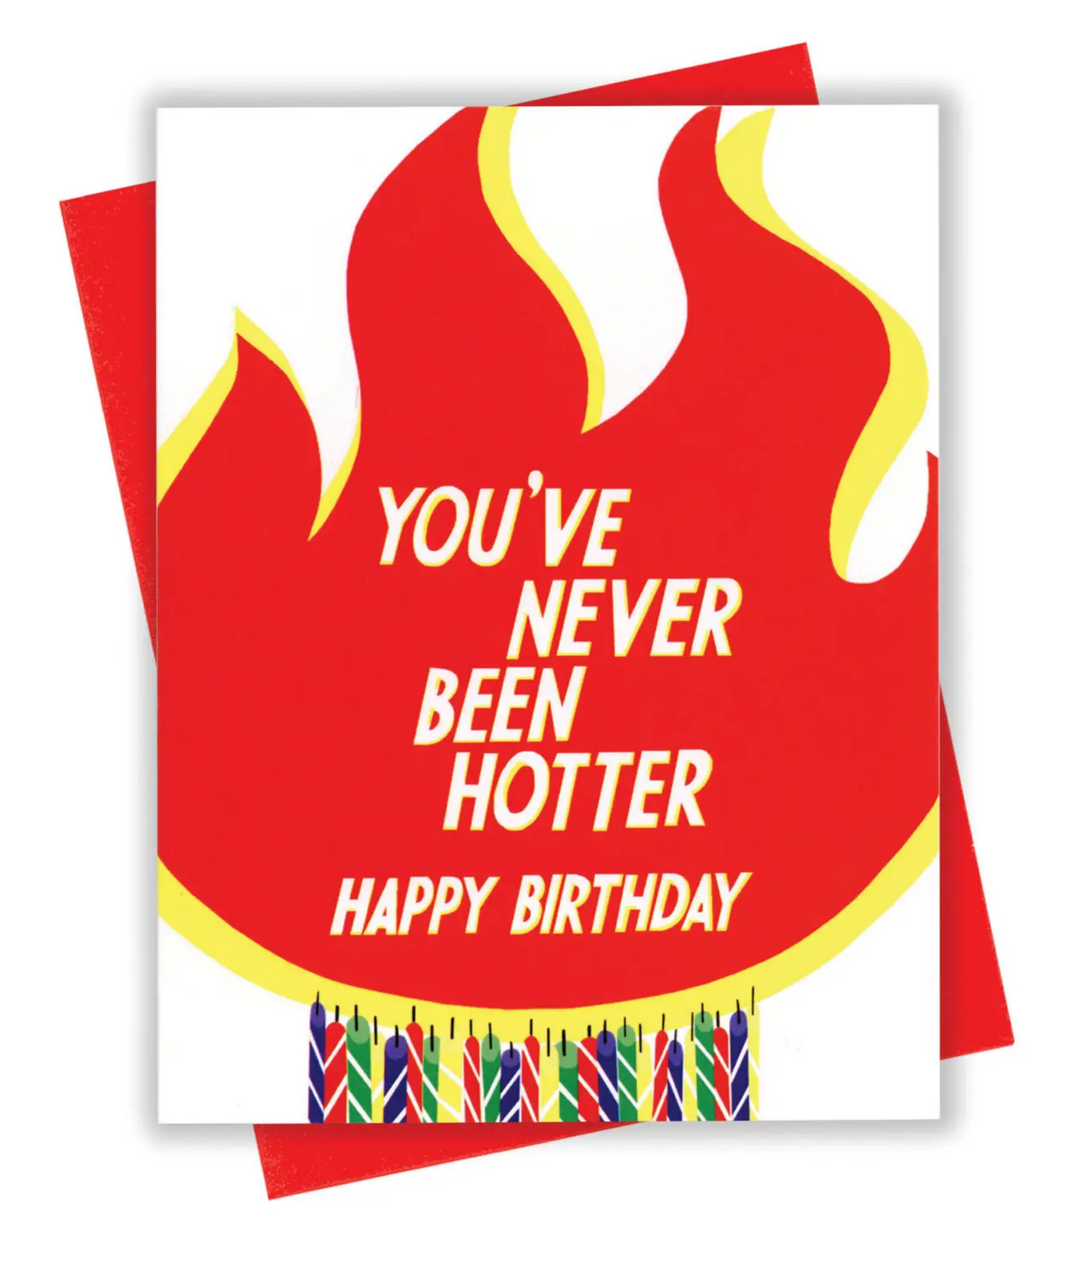 Hotter Than Ever Card